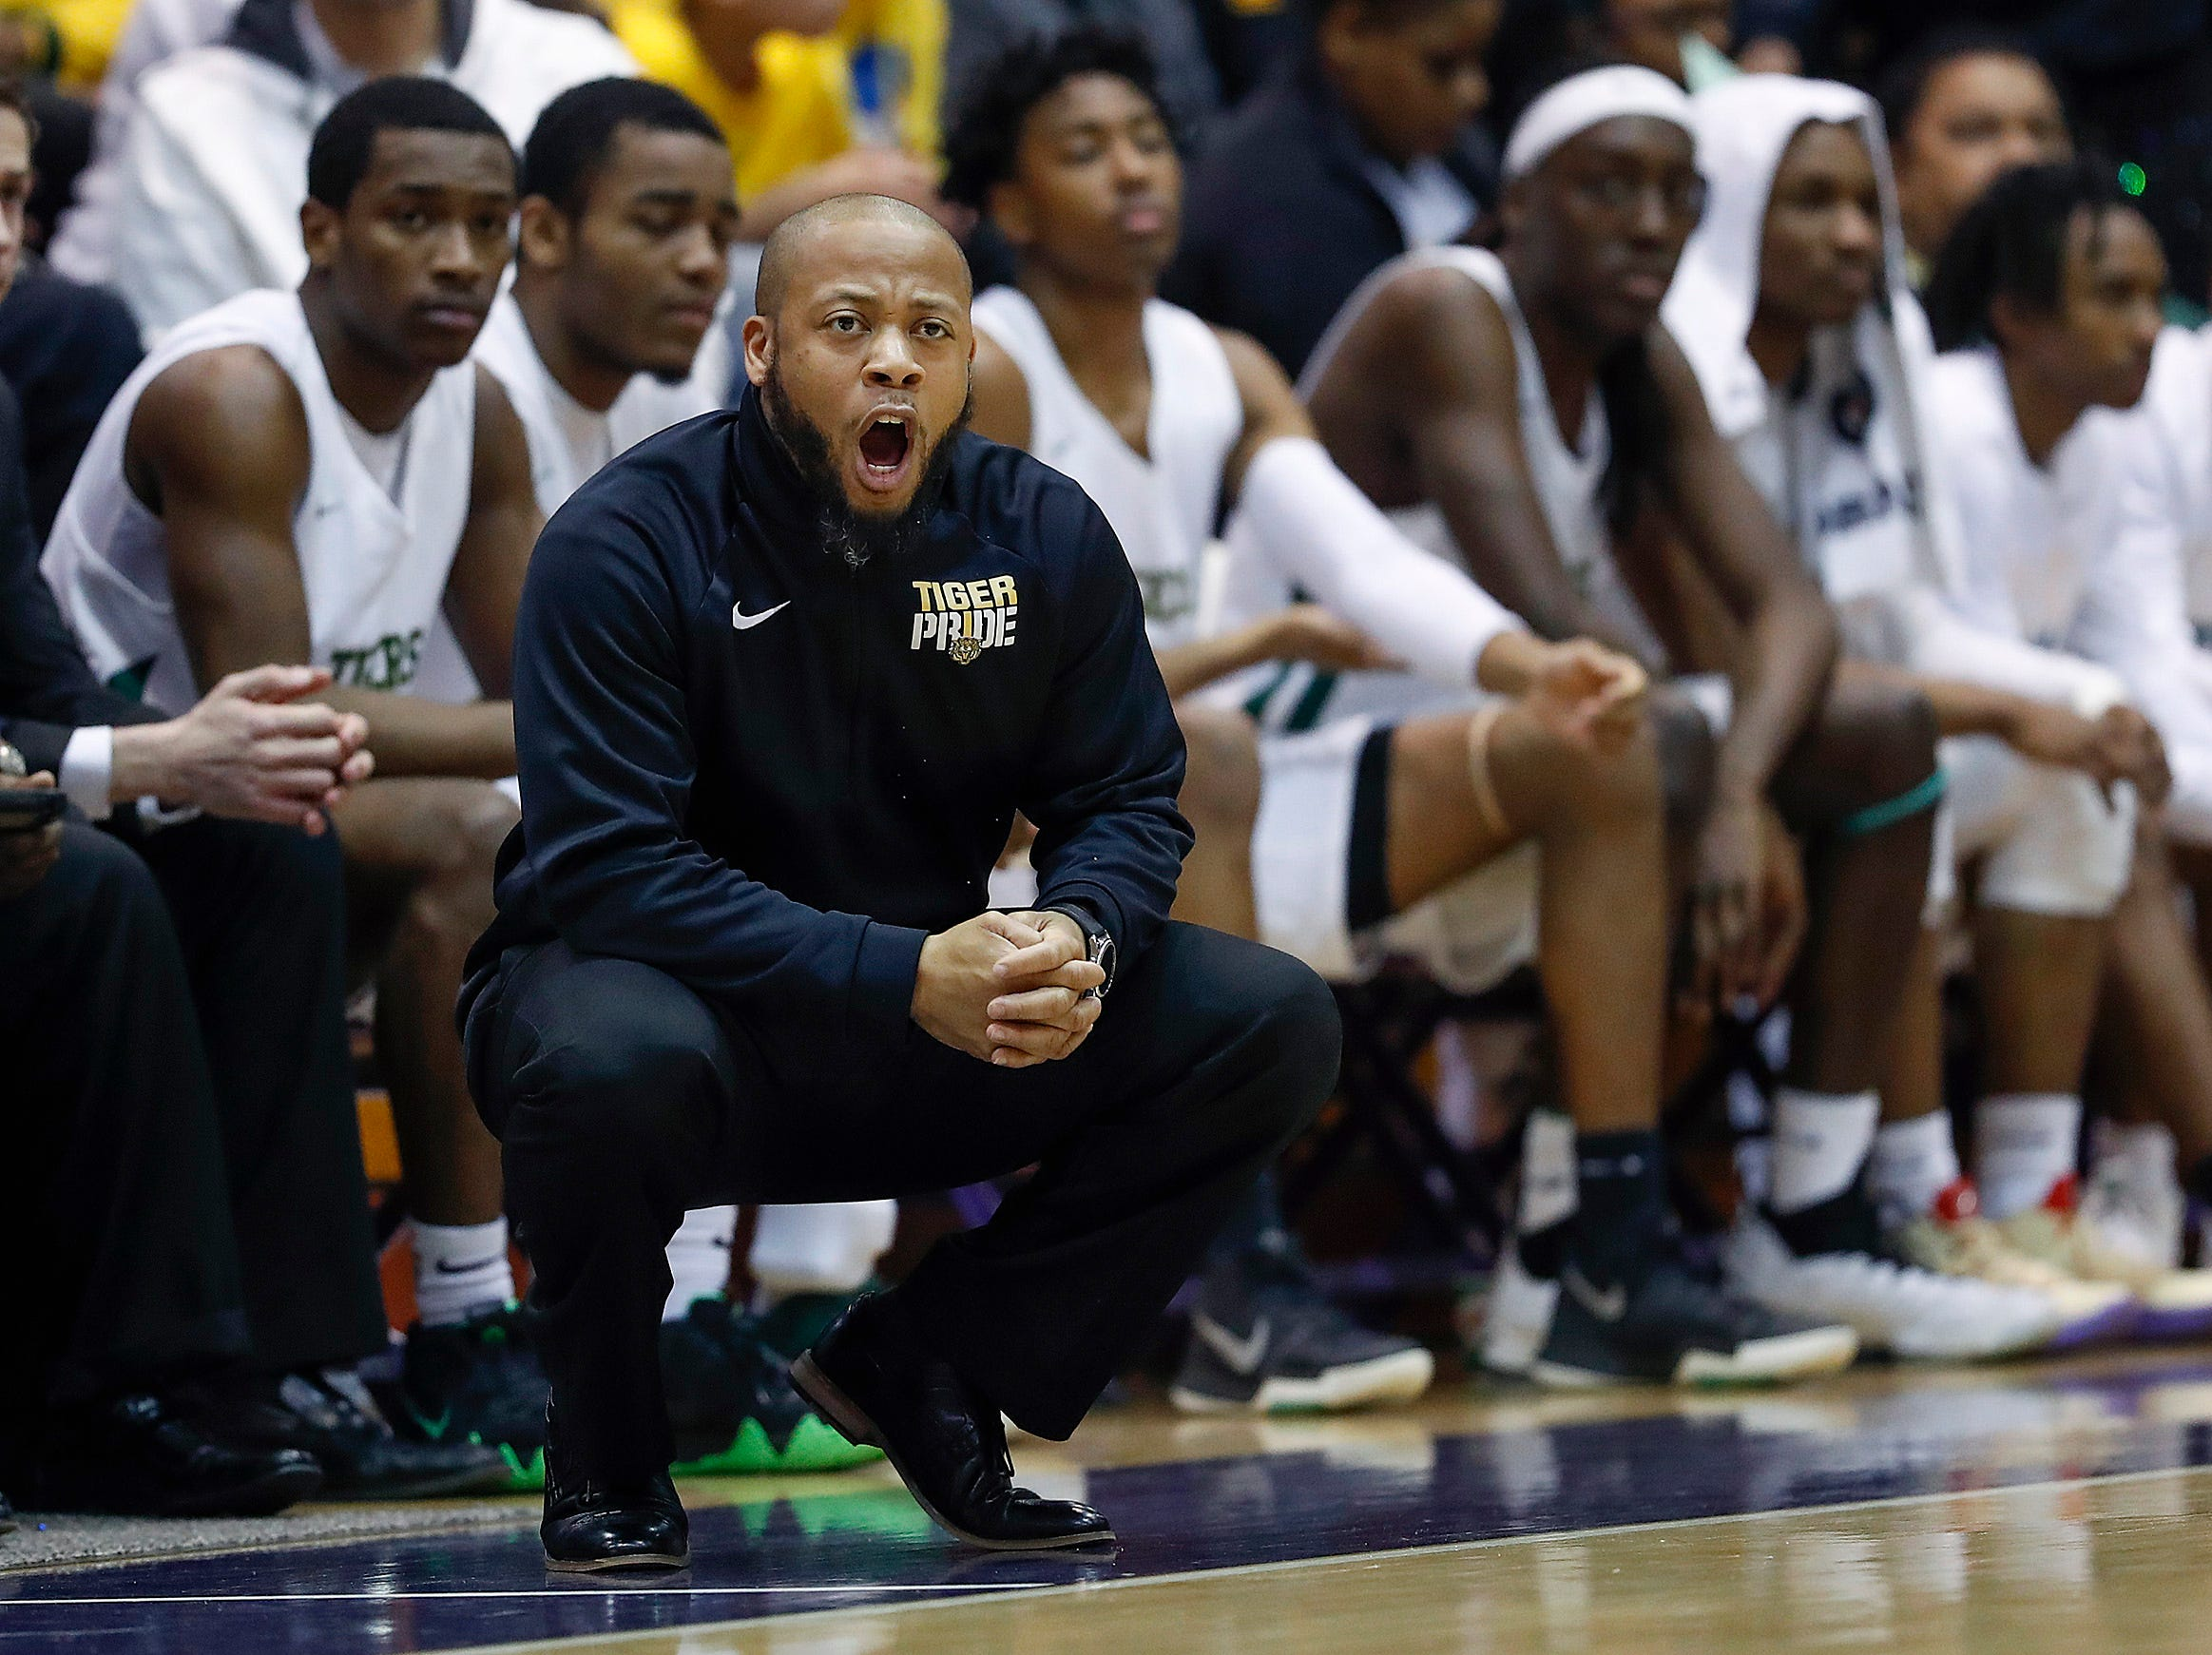 Crispus Attucks Tigers head coach Chris Hawkins calls out to his players in the first half of their IHSAA boys' Semi-State basketball game at Seymour High School gym in Seymour IN, on Saturday, Mar. 16, 2019.